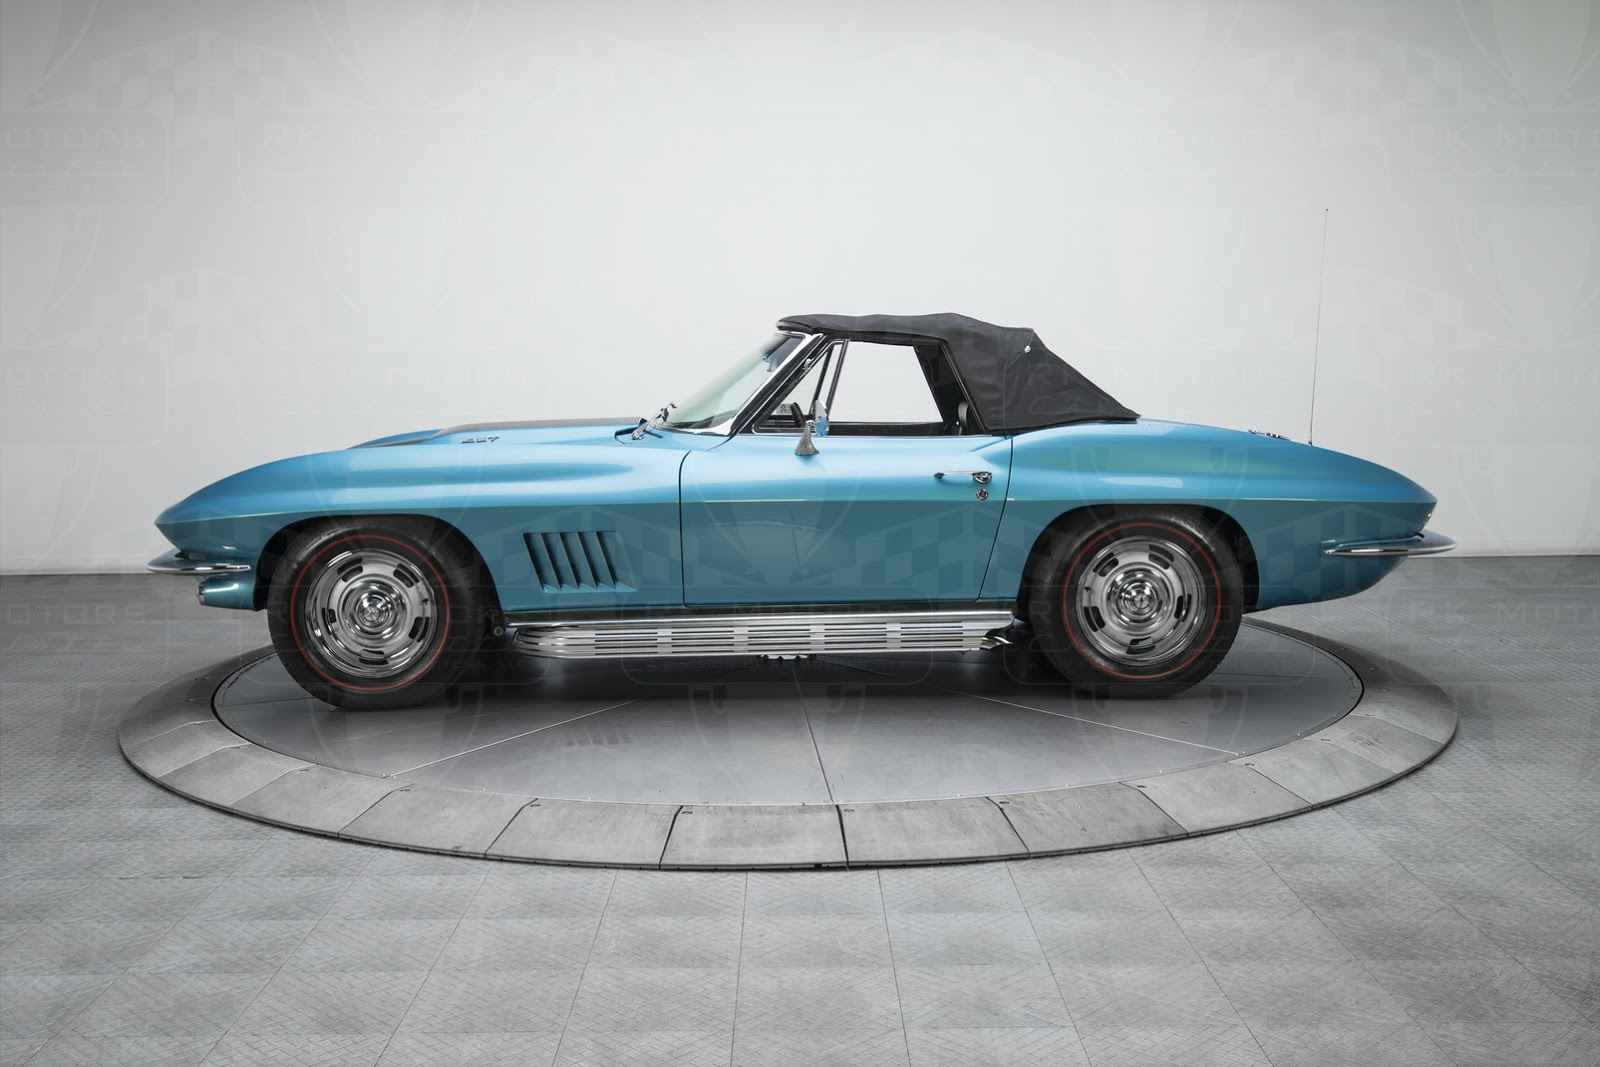 1967-Chevrolet-Corvette-Sting-Ray17.jpg